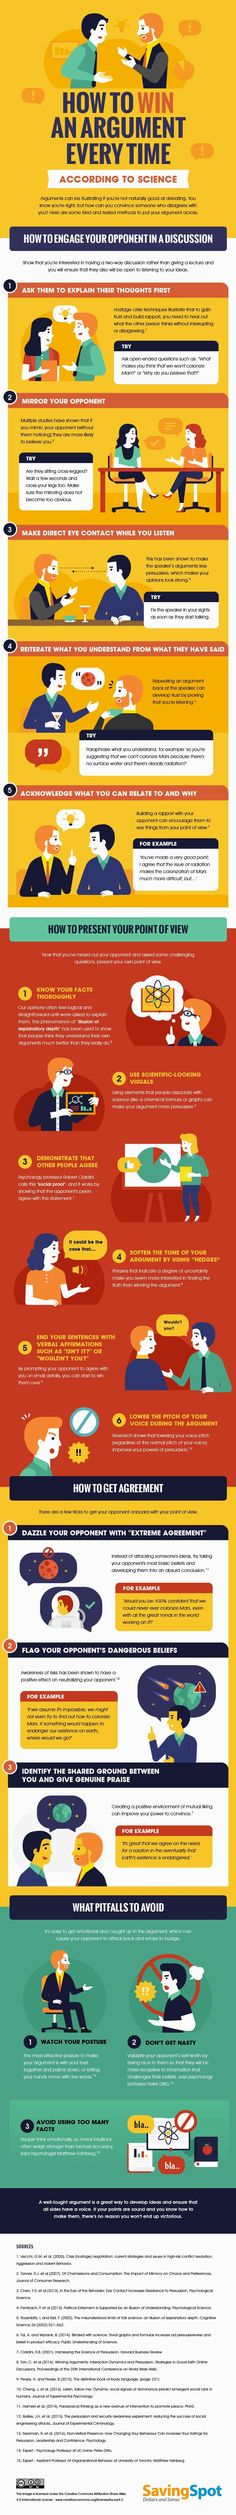 How to Win an Argument, According to Science (Infographic)